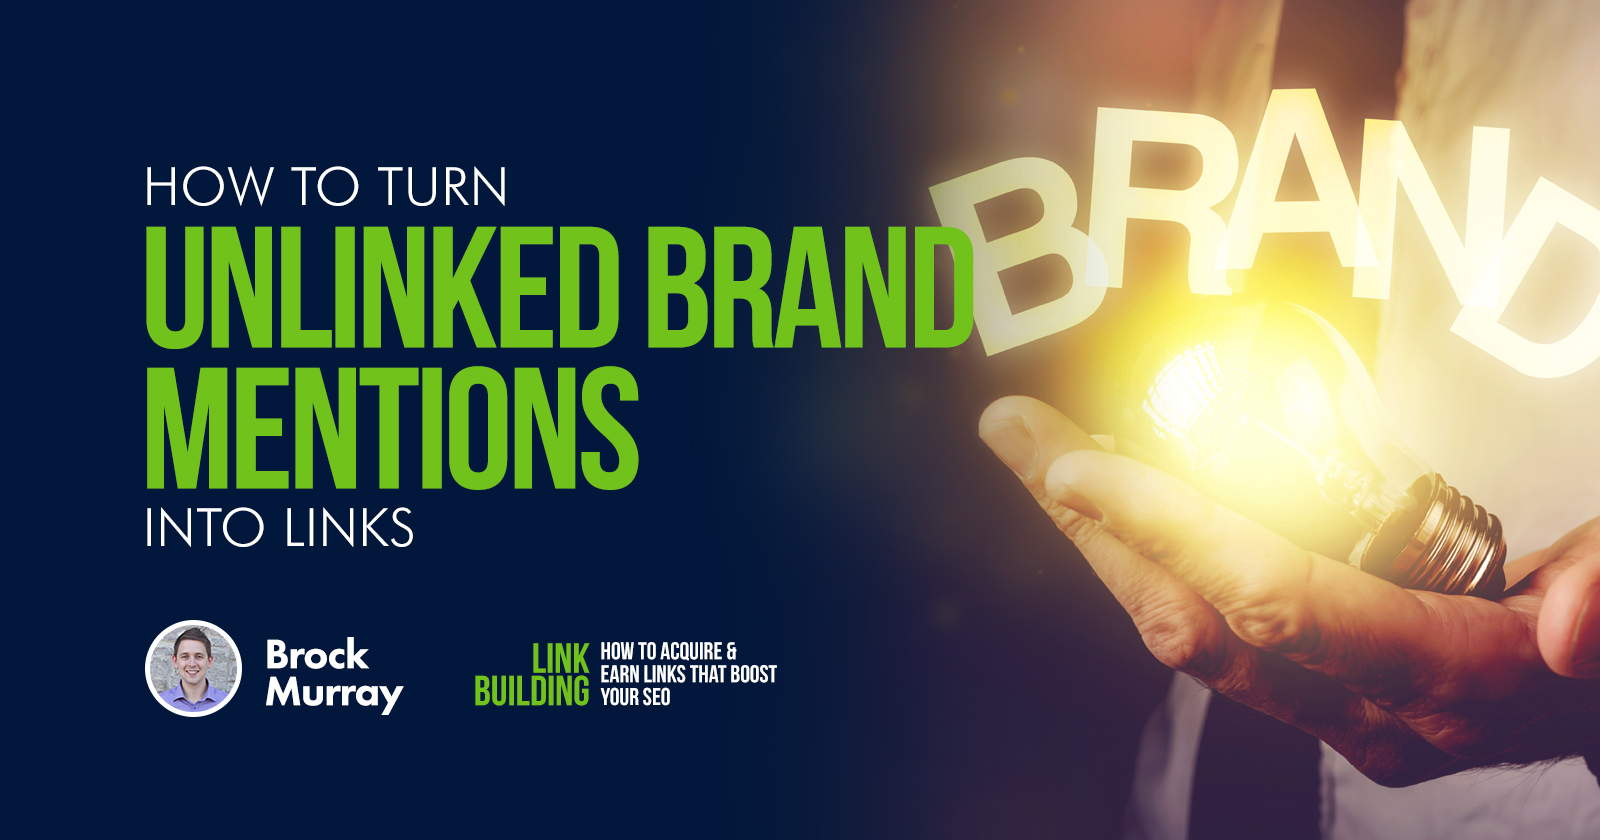 how-to-turn-unlinked-brand-mentions-into-links-via-@seobrock